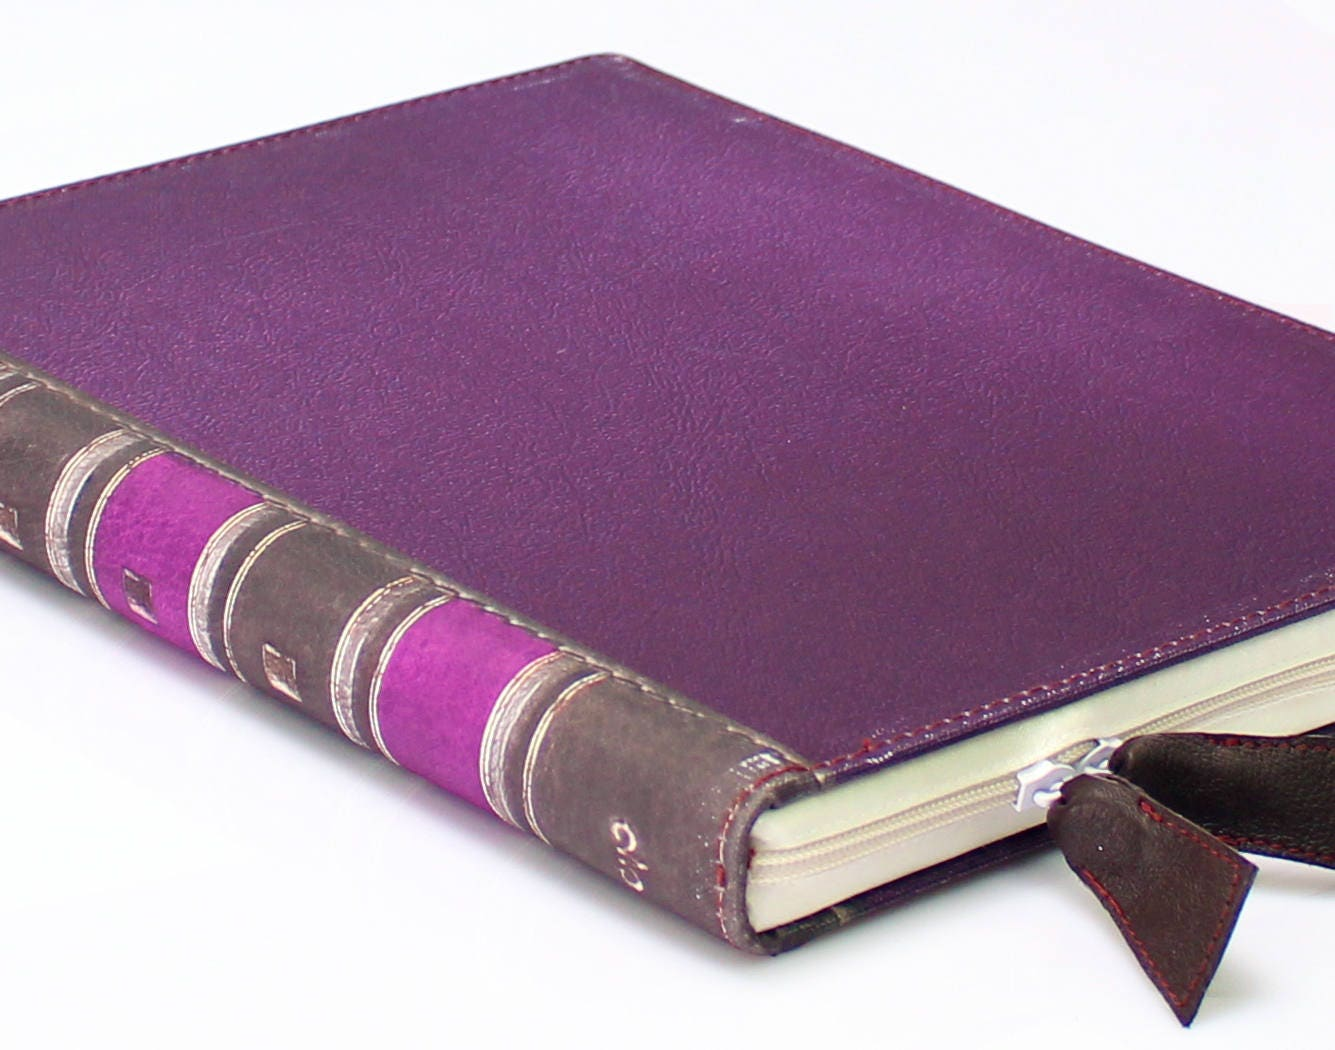 Macbook Air Old Book Cover : Macbook air case purple old vintage book antique